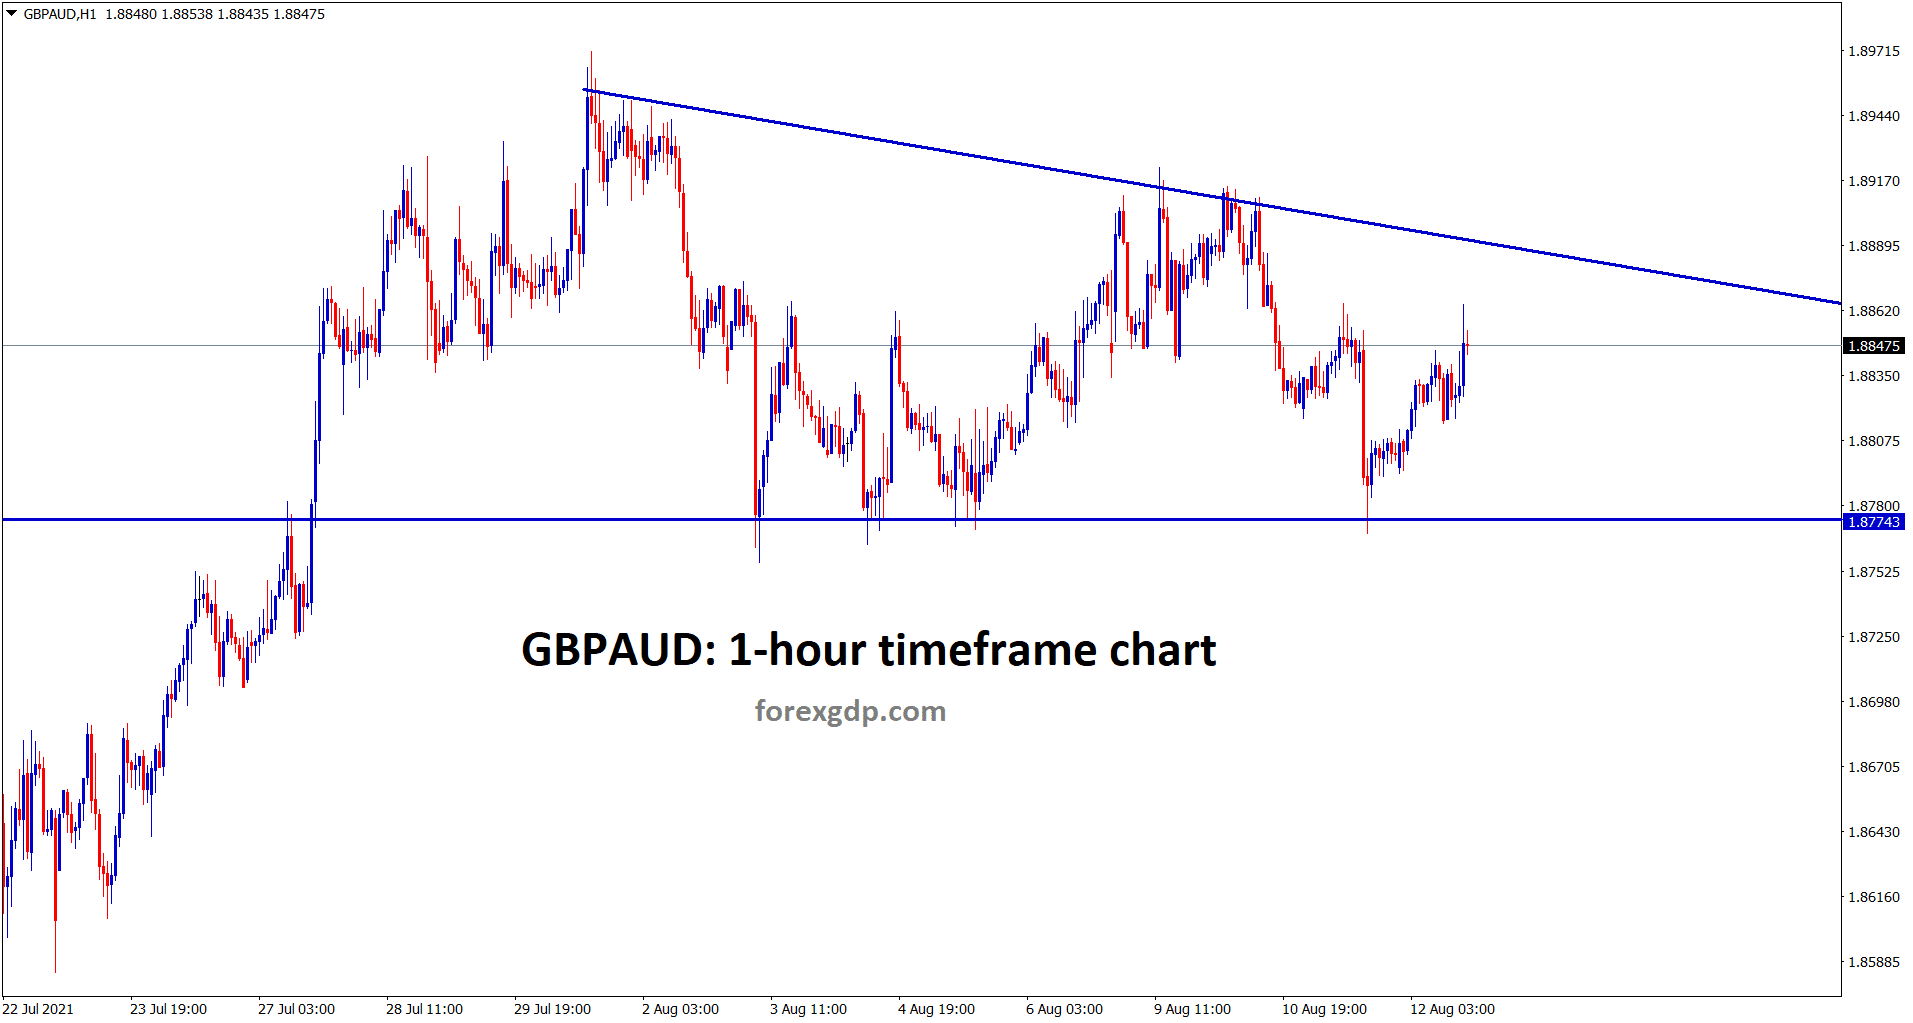 GBPAUD has formed a descending triangle pattern in the hourly chart